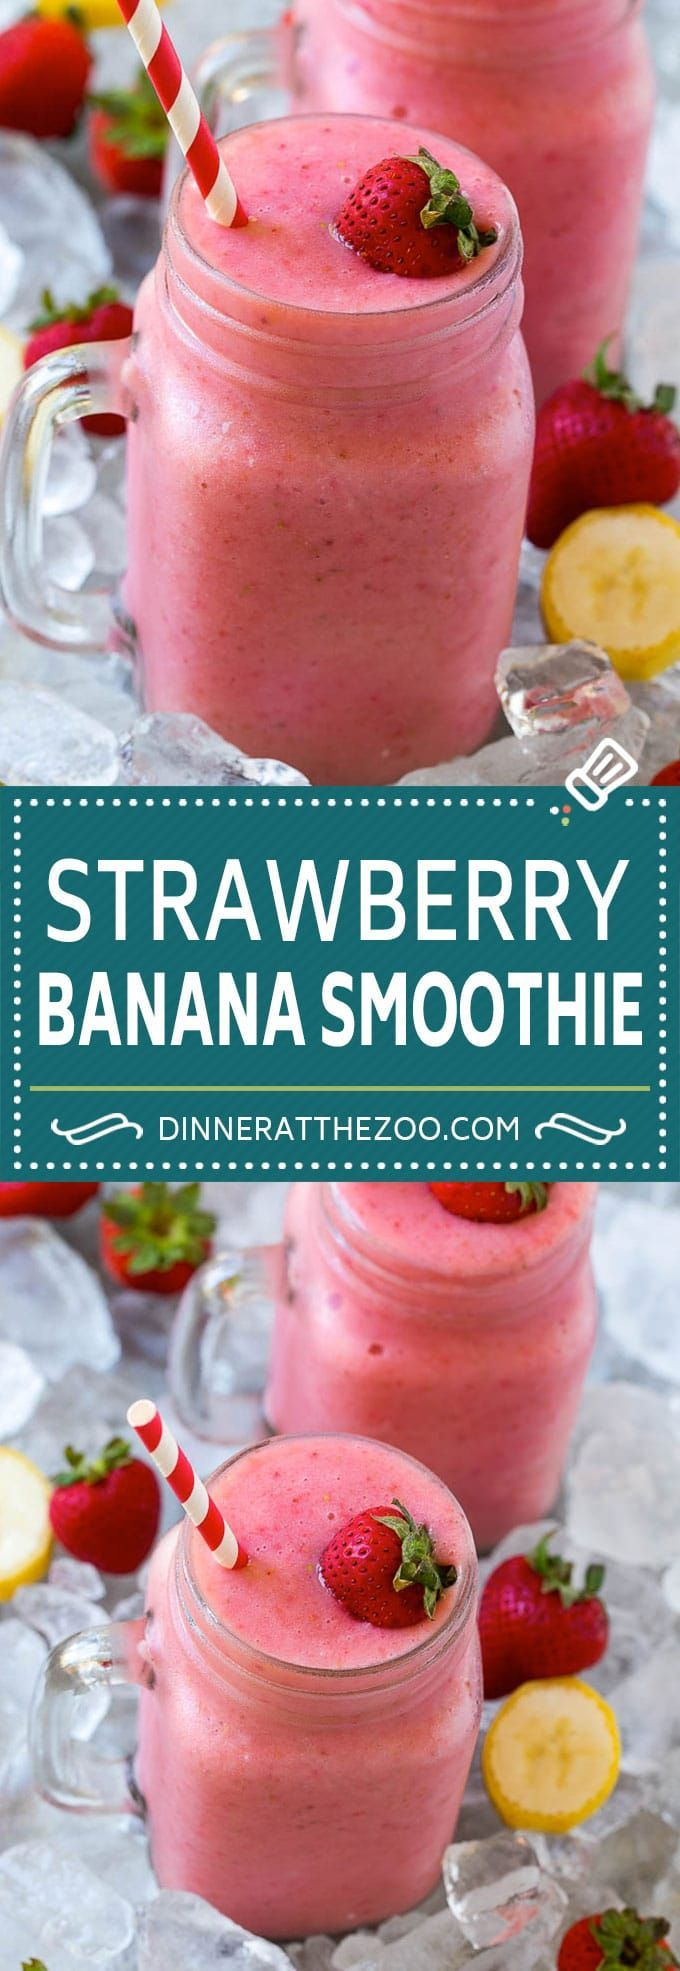 Strawberry Banana Smoothie - Dinner at the Zoo